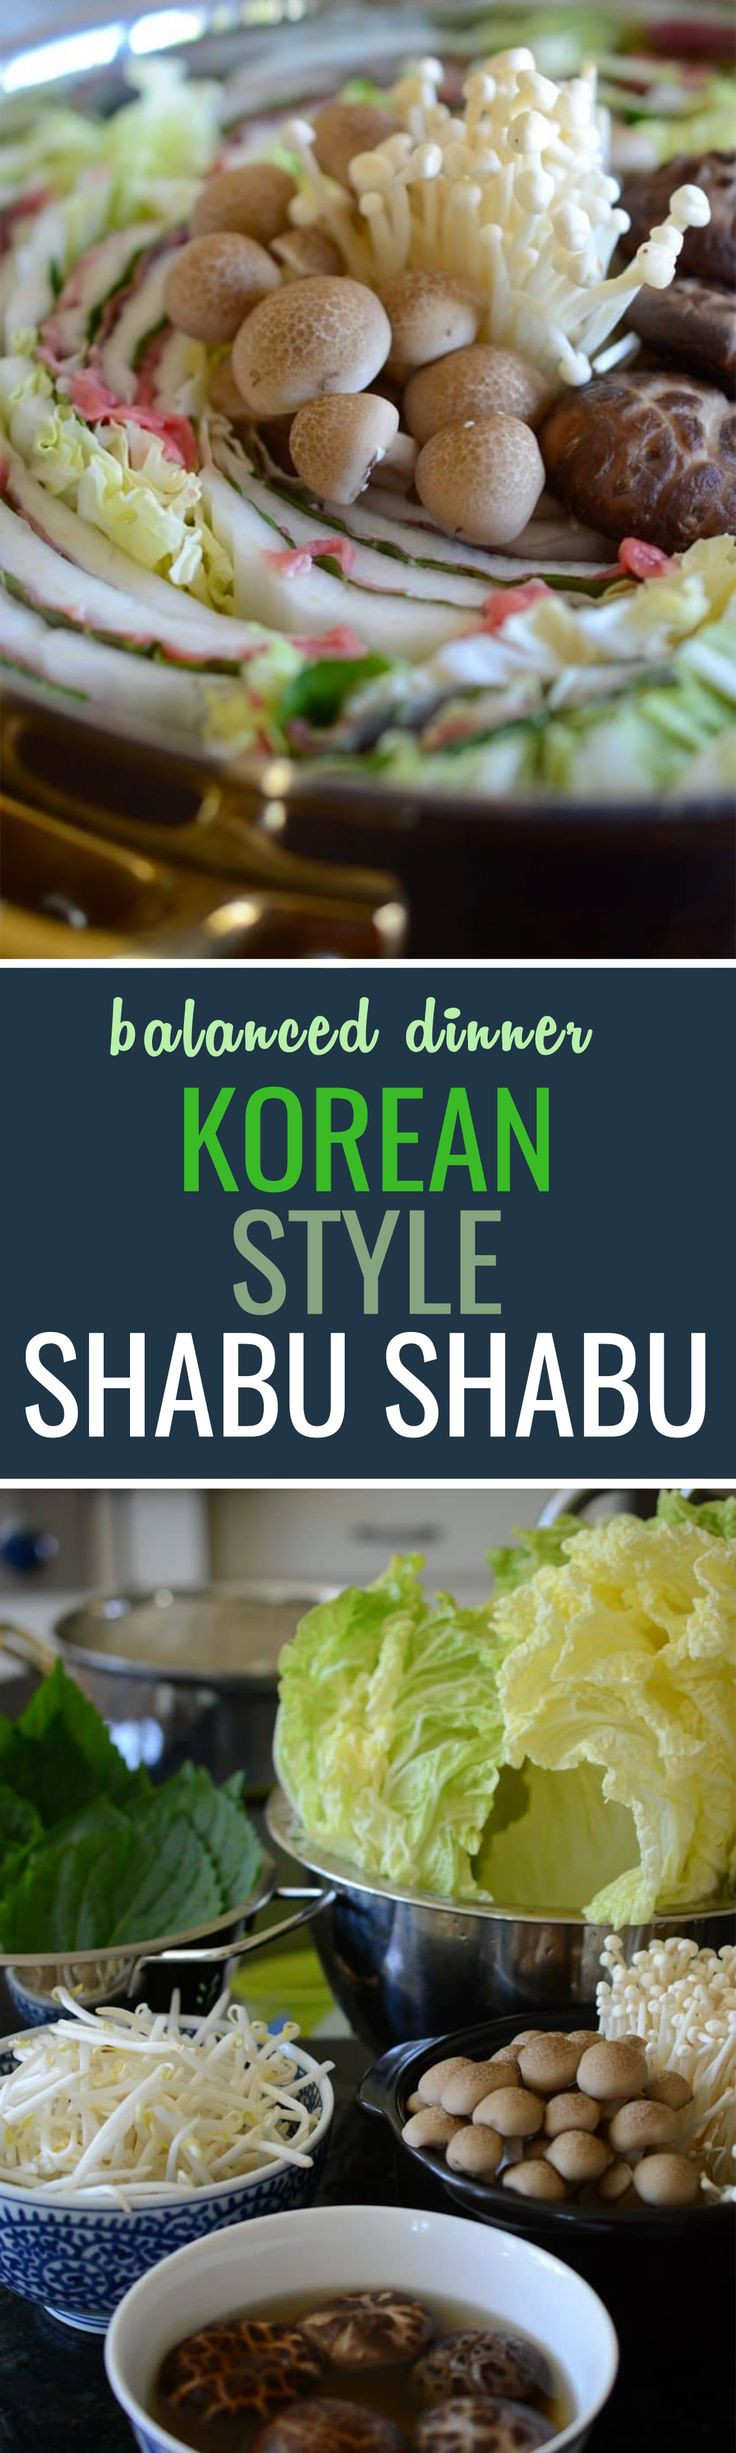 Shabu shabu with a Korean twist, a popular dish for gathering with family and friends!